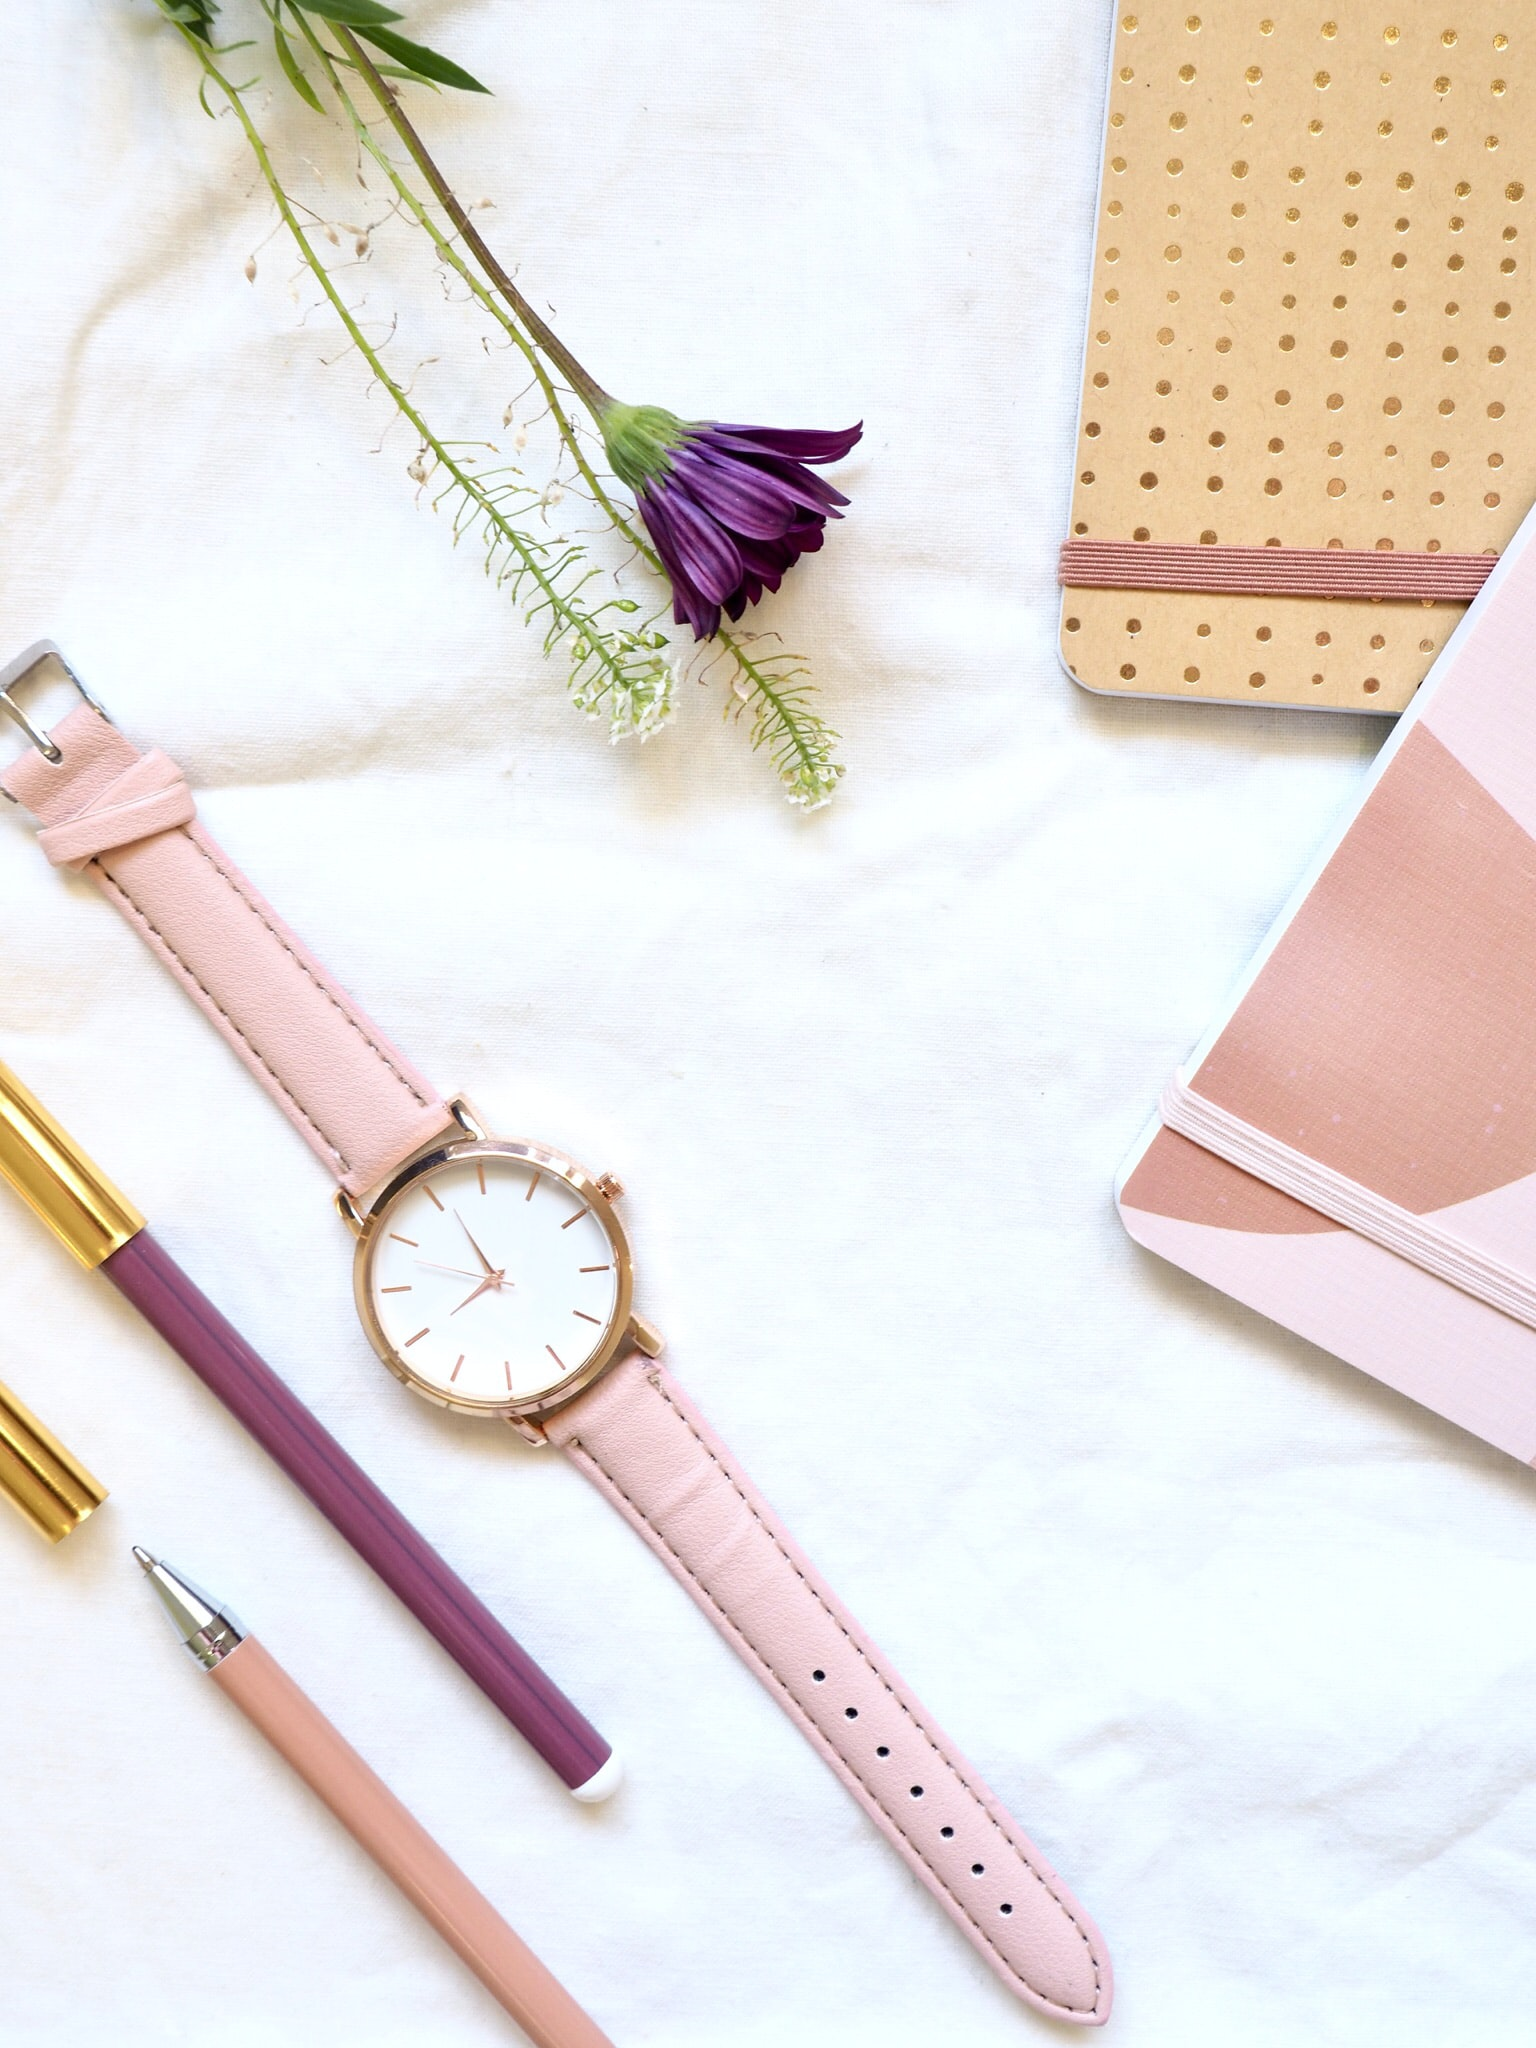 round gold-colored analog watch with pink leather band at 9:00